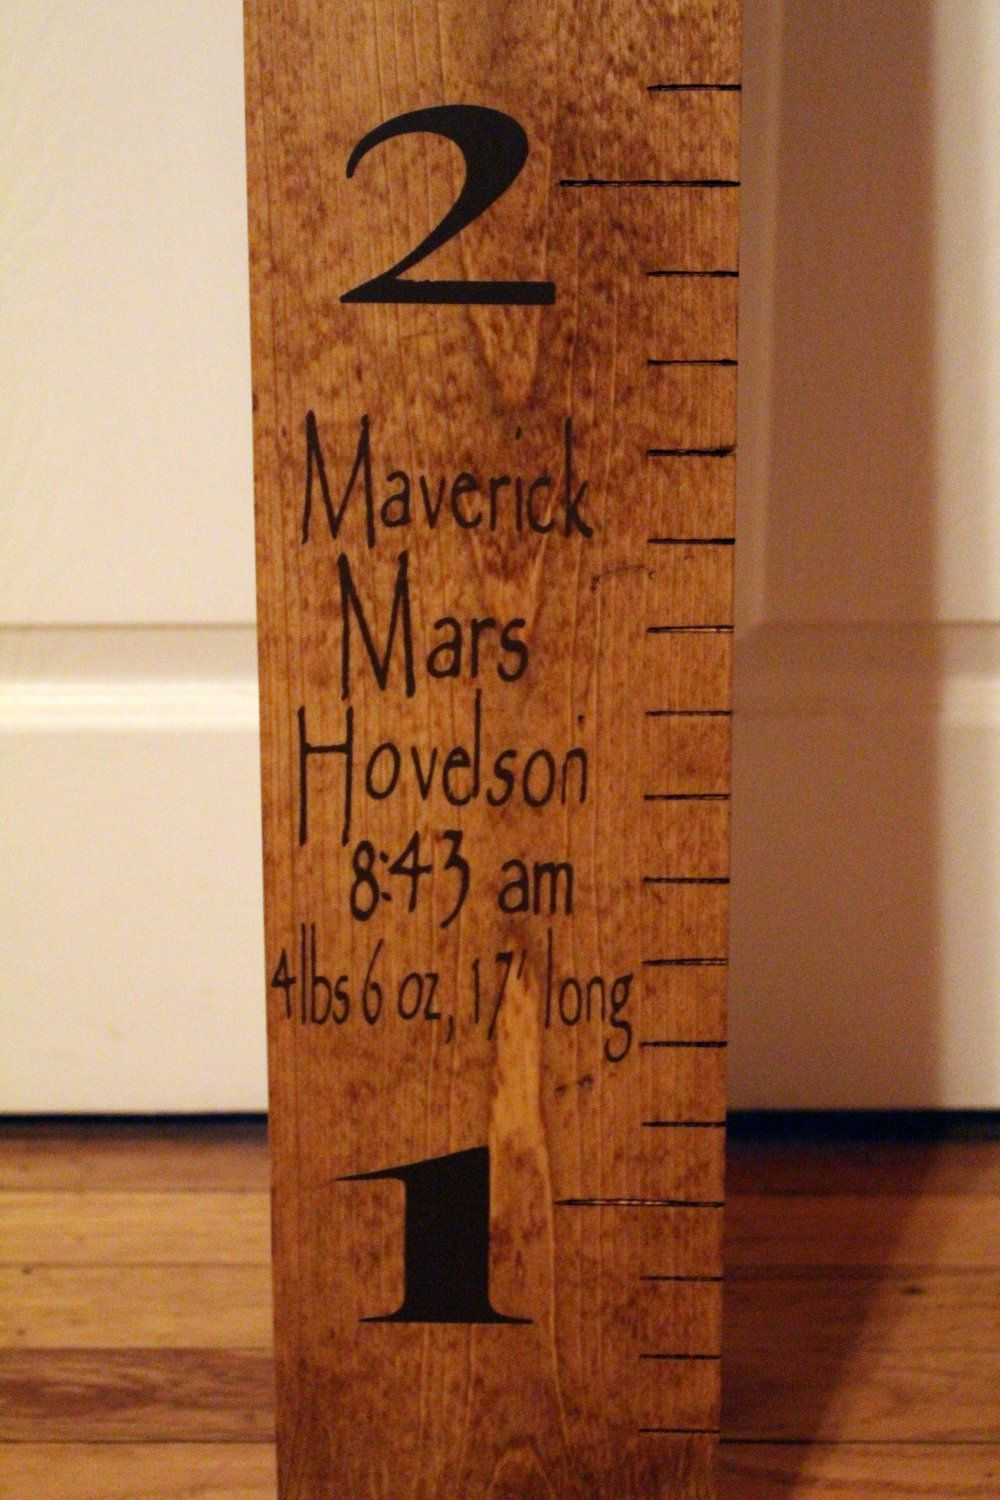 Wooden growth chart child measurements ruler oversized ruler wooden growth chart child measurements ruler oversized ruler kids ruler oversized growth chart nursery decor wood growth chart nvjuhfo Choice Image